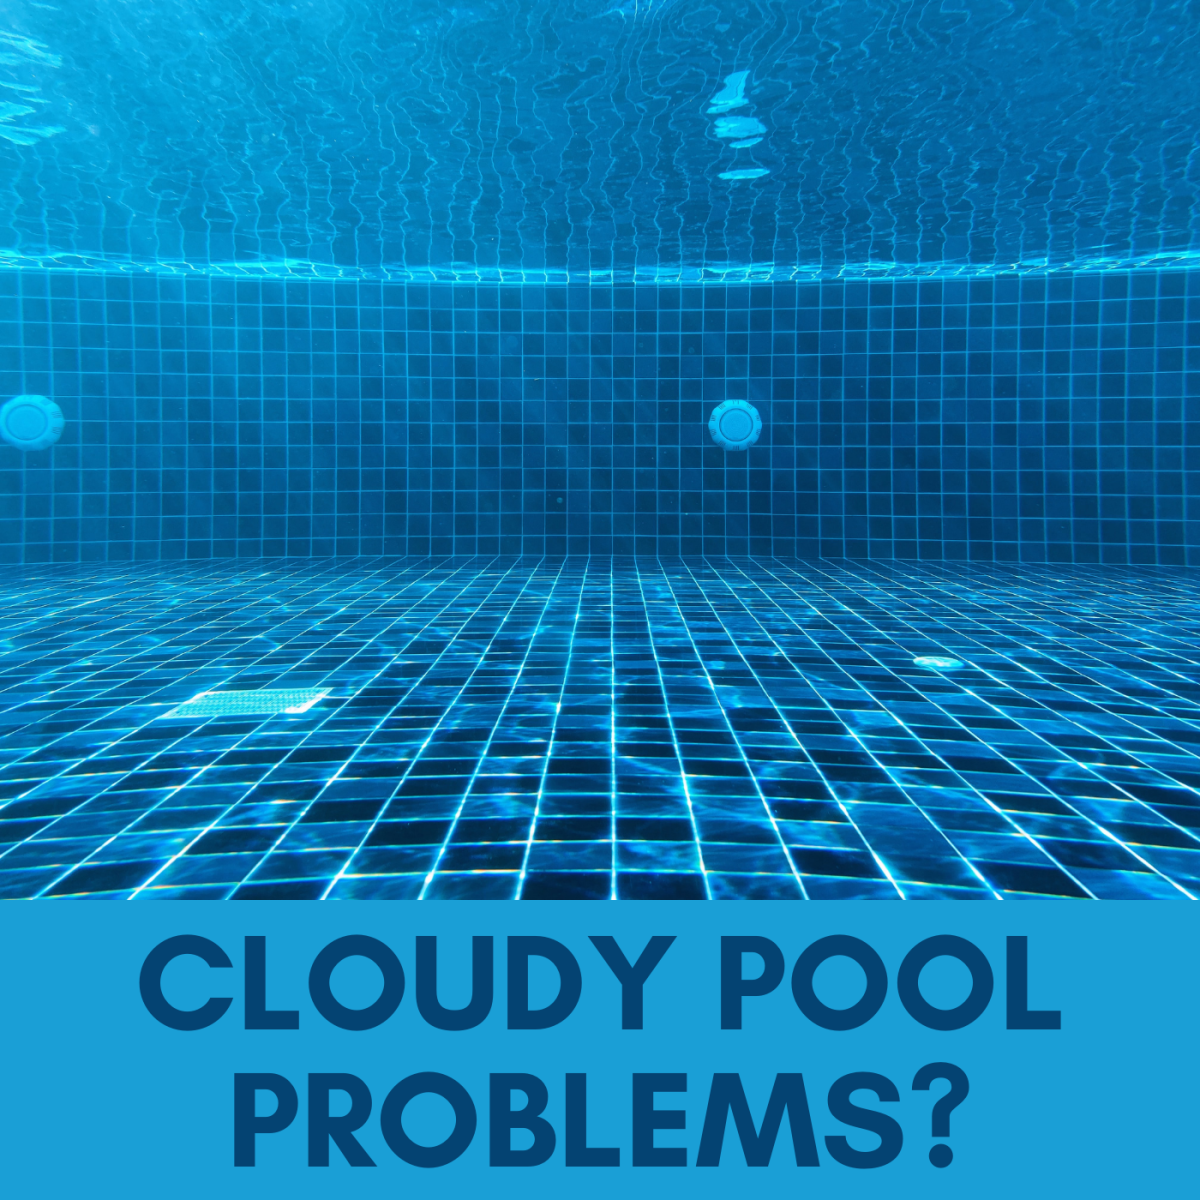 Learn how to use flocculant to clean your cloudy pool. It's as easy as 1-2-3.